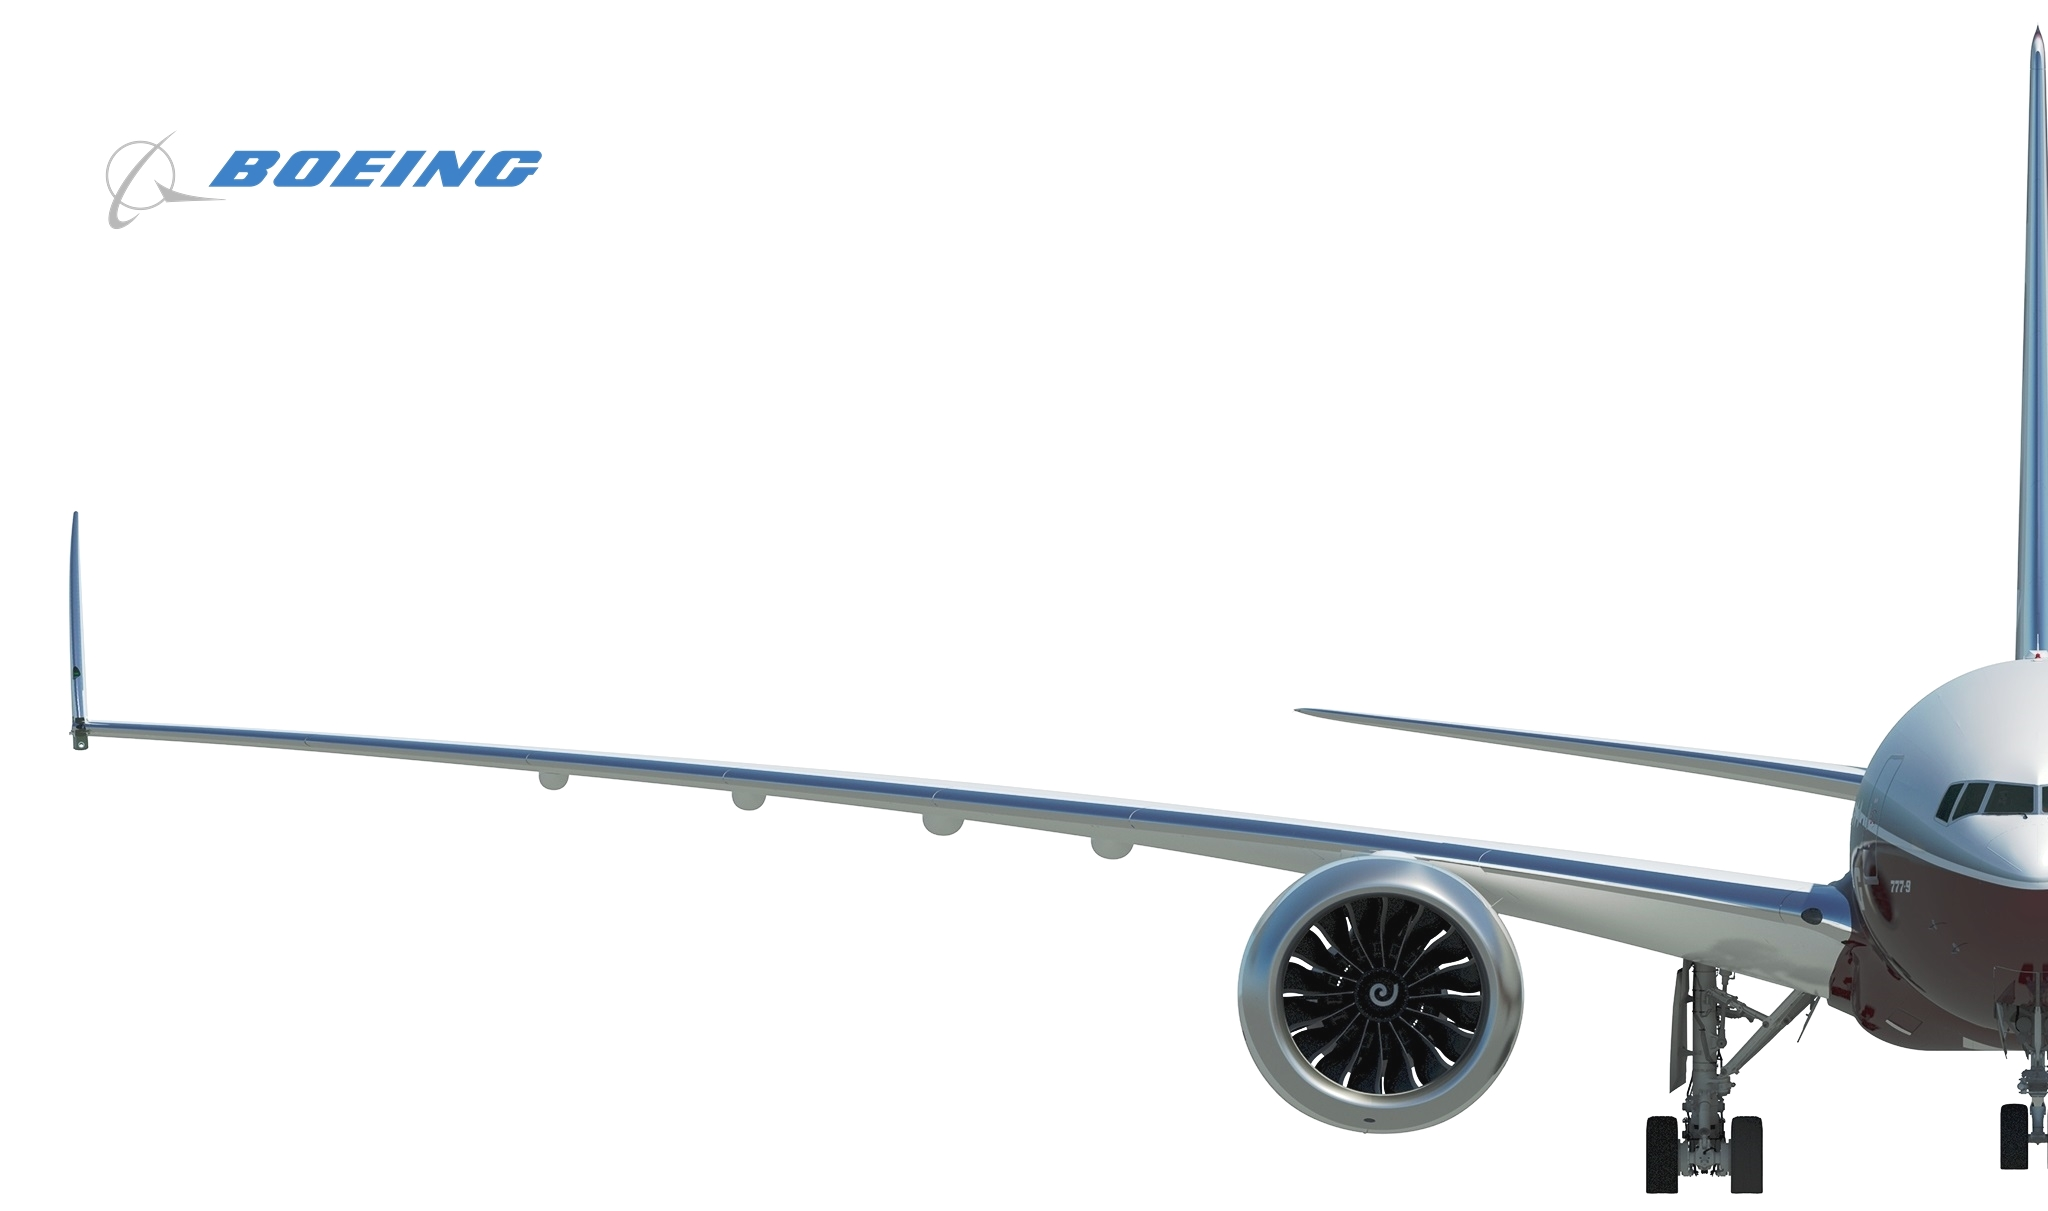 777-9-wingfold-front